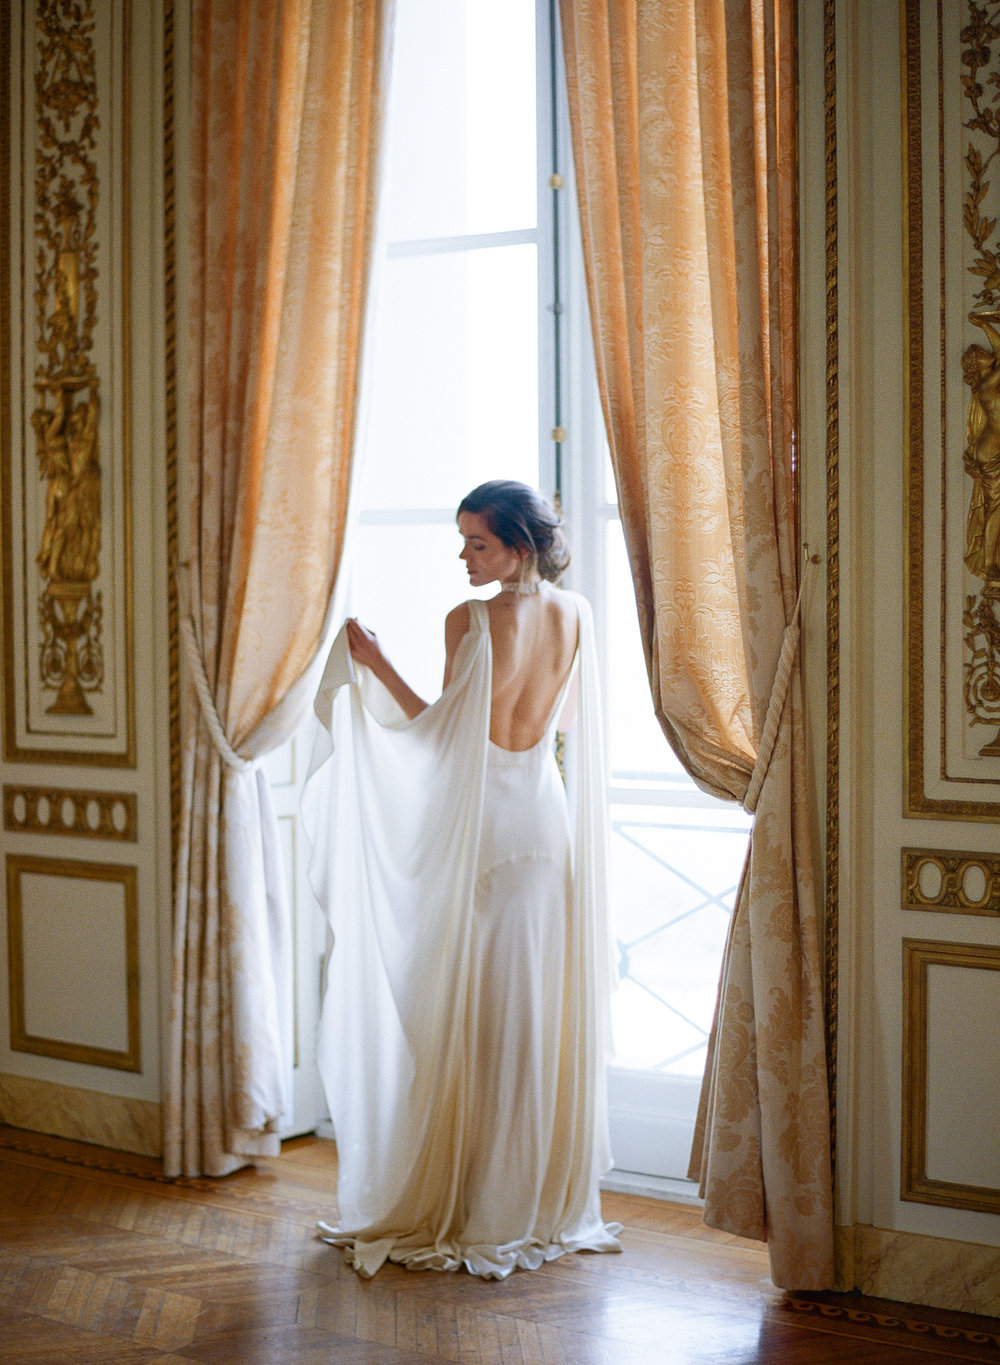 A Parisian bride stands at the window in Pavillon de la Musique in Paris, France; Sylvie Gil Photography